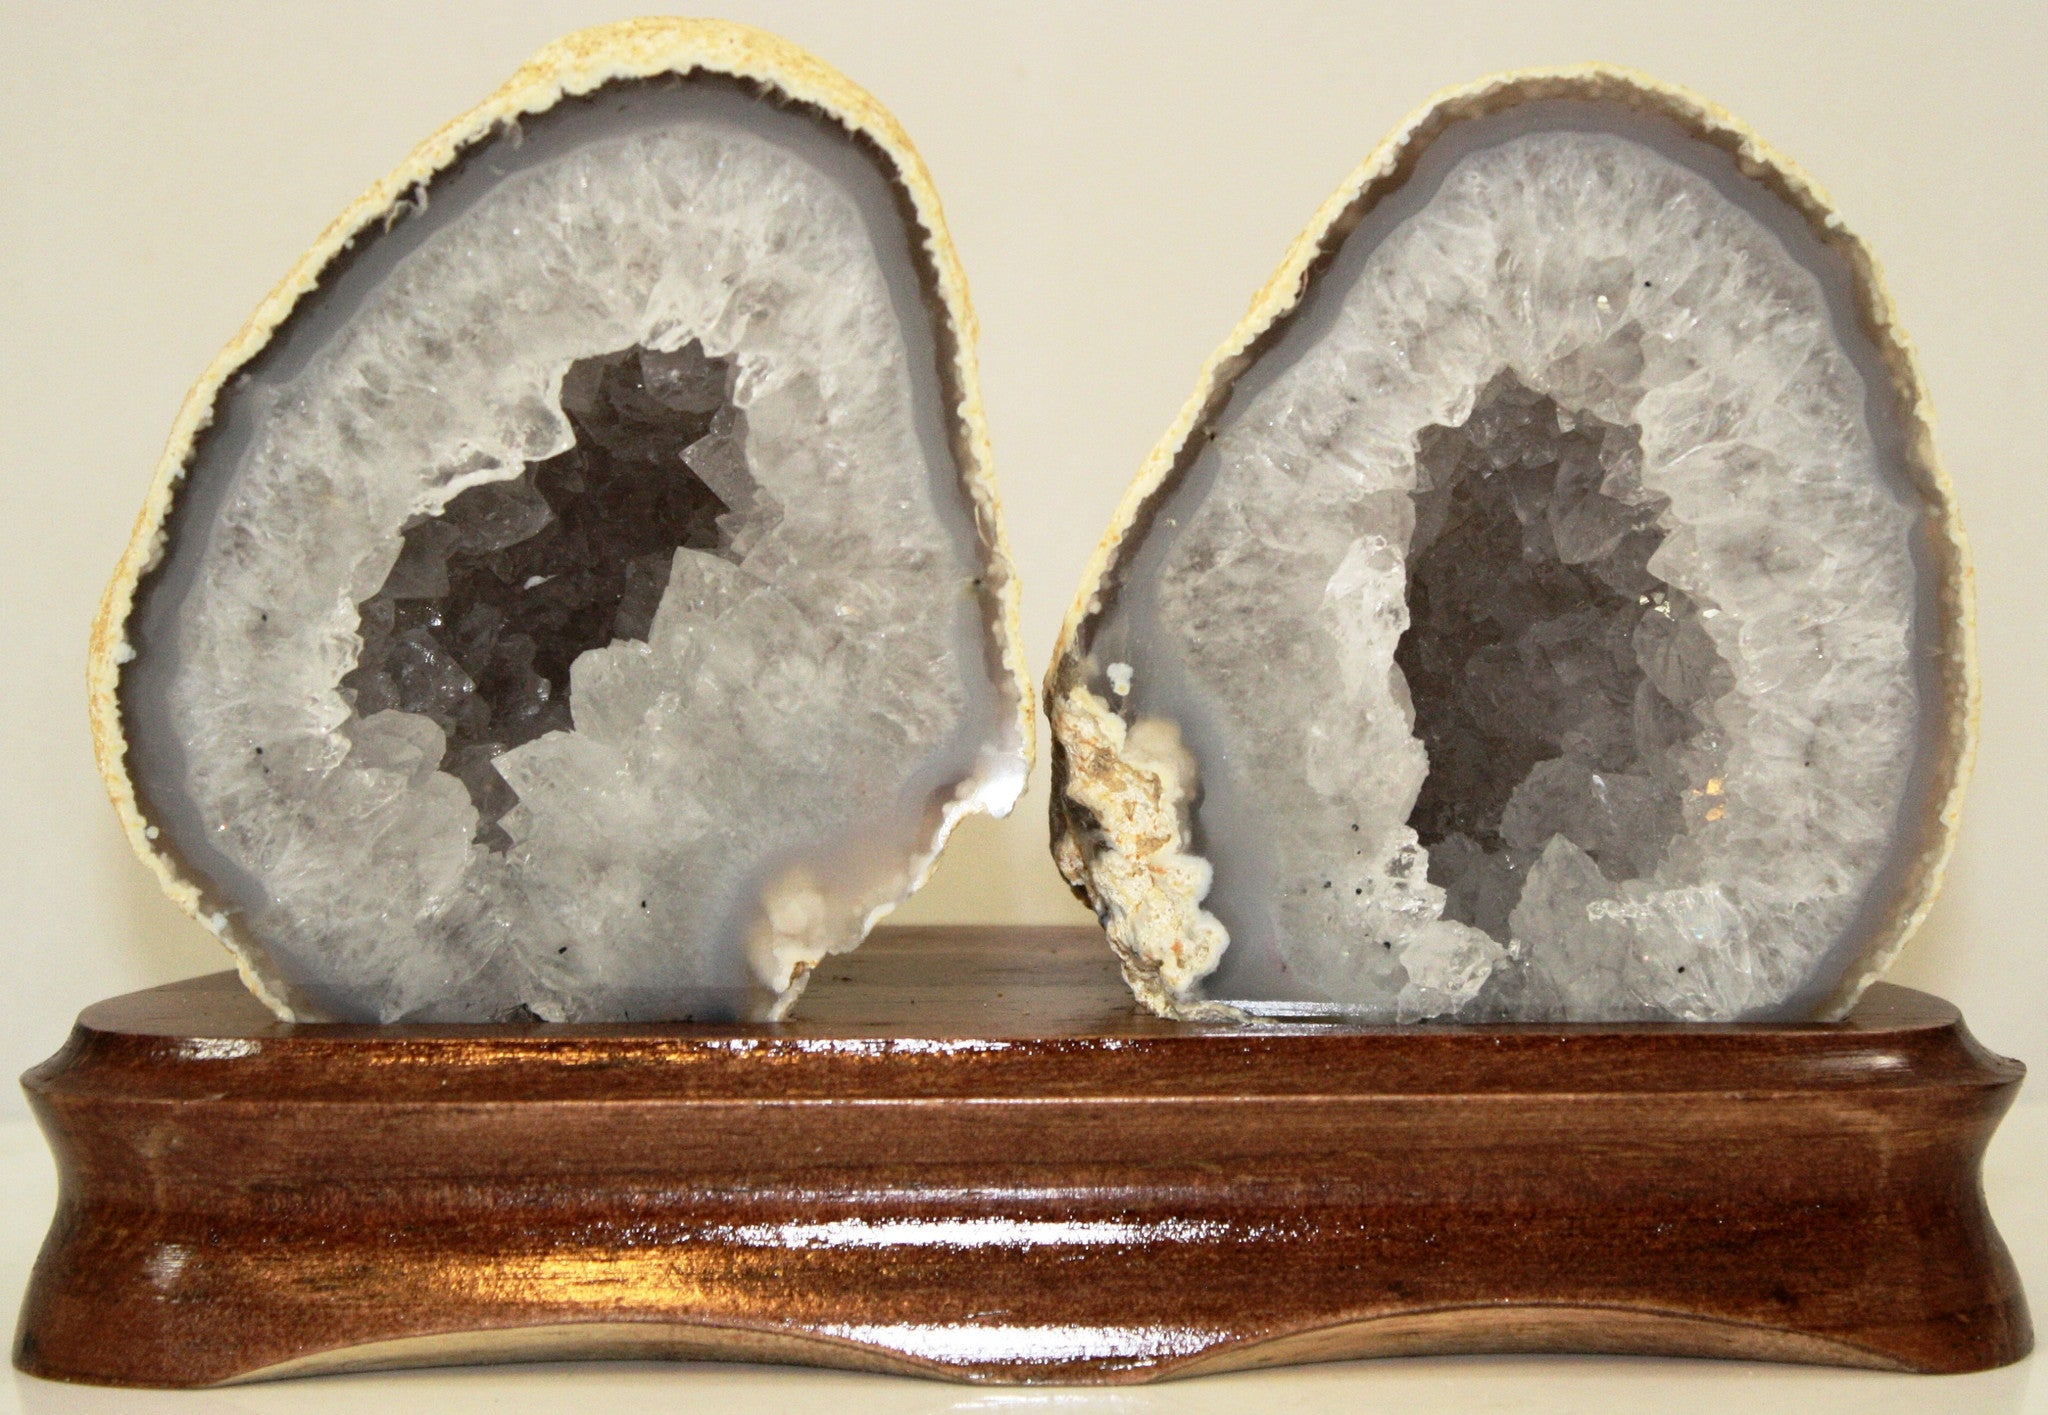 Pair of Matching Geodes on Wood Base - Off The Wall Toys and Gifts